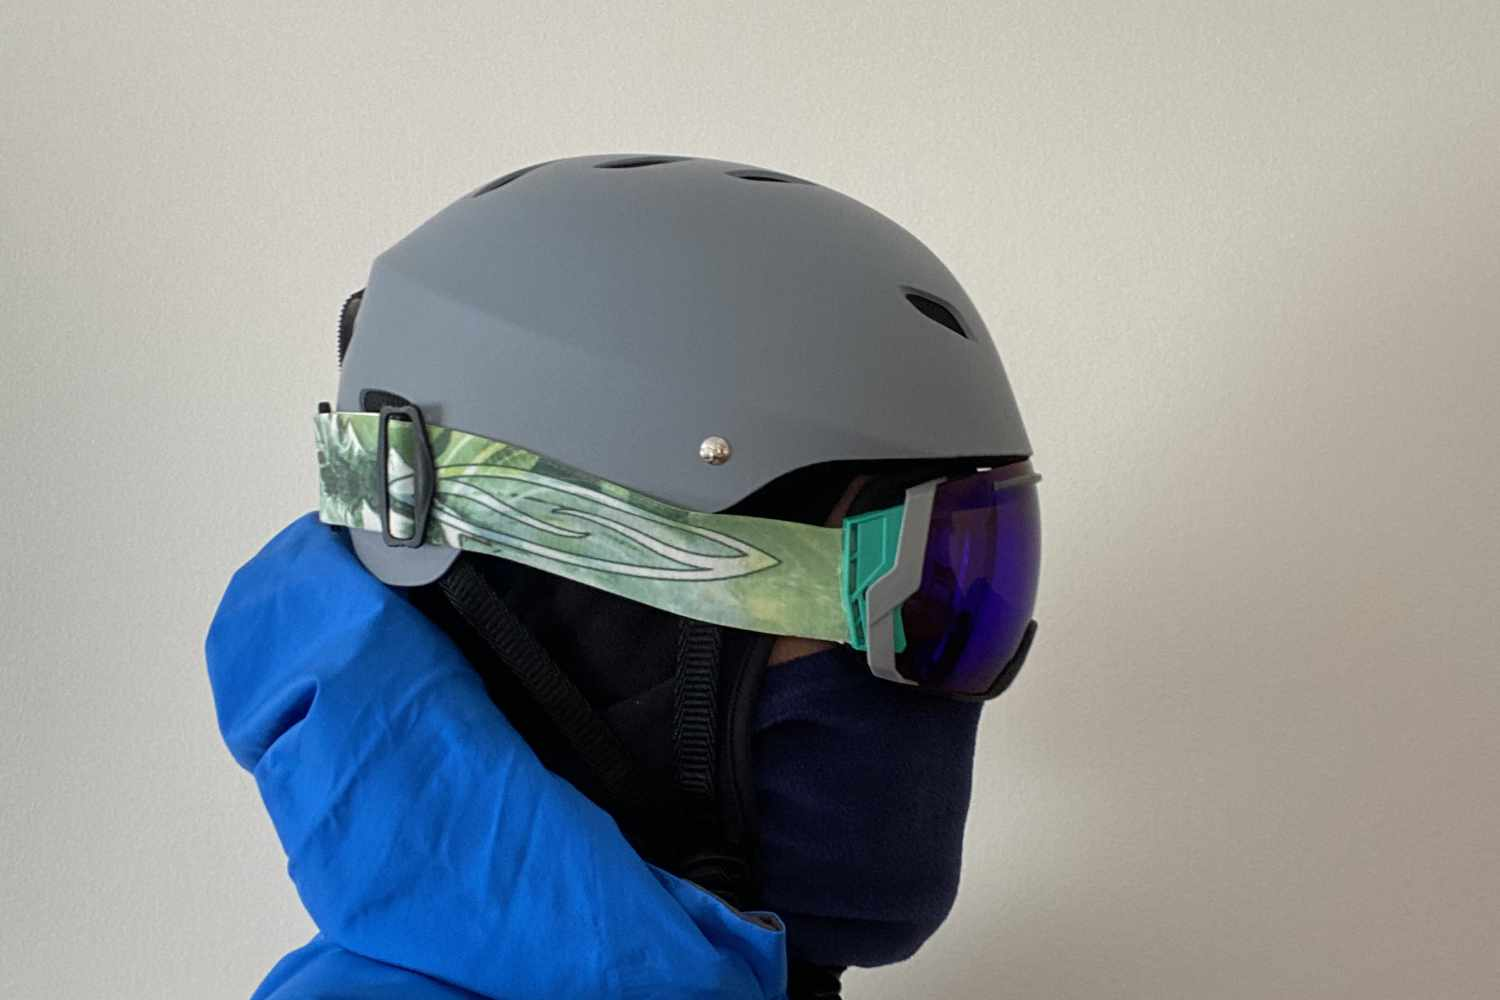 helmet side view smith goggles